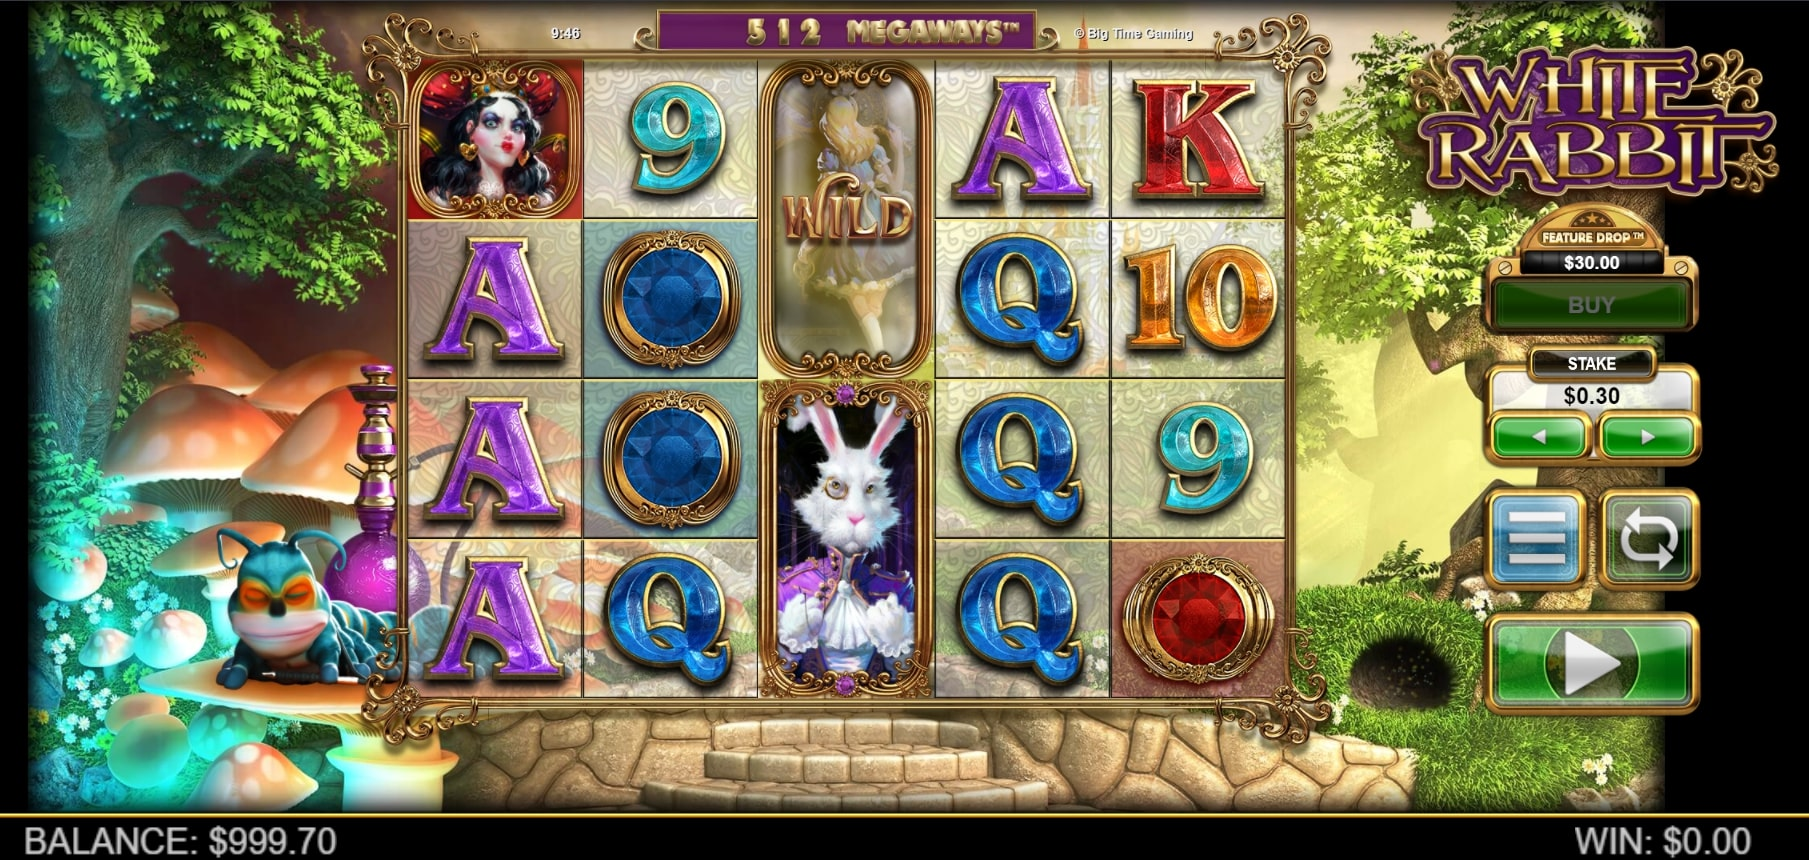 White Rabbit slot screenshot with Alice in Wonderlands characters and colorful graphics